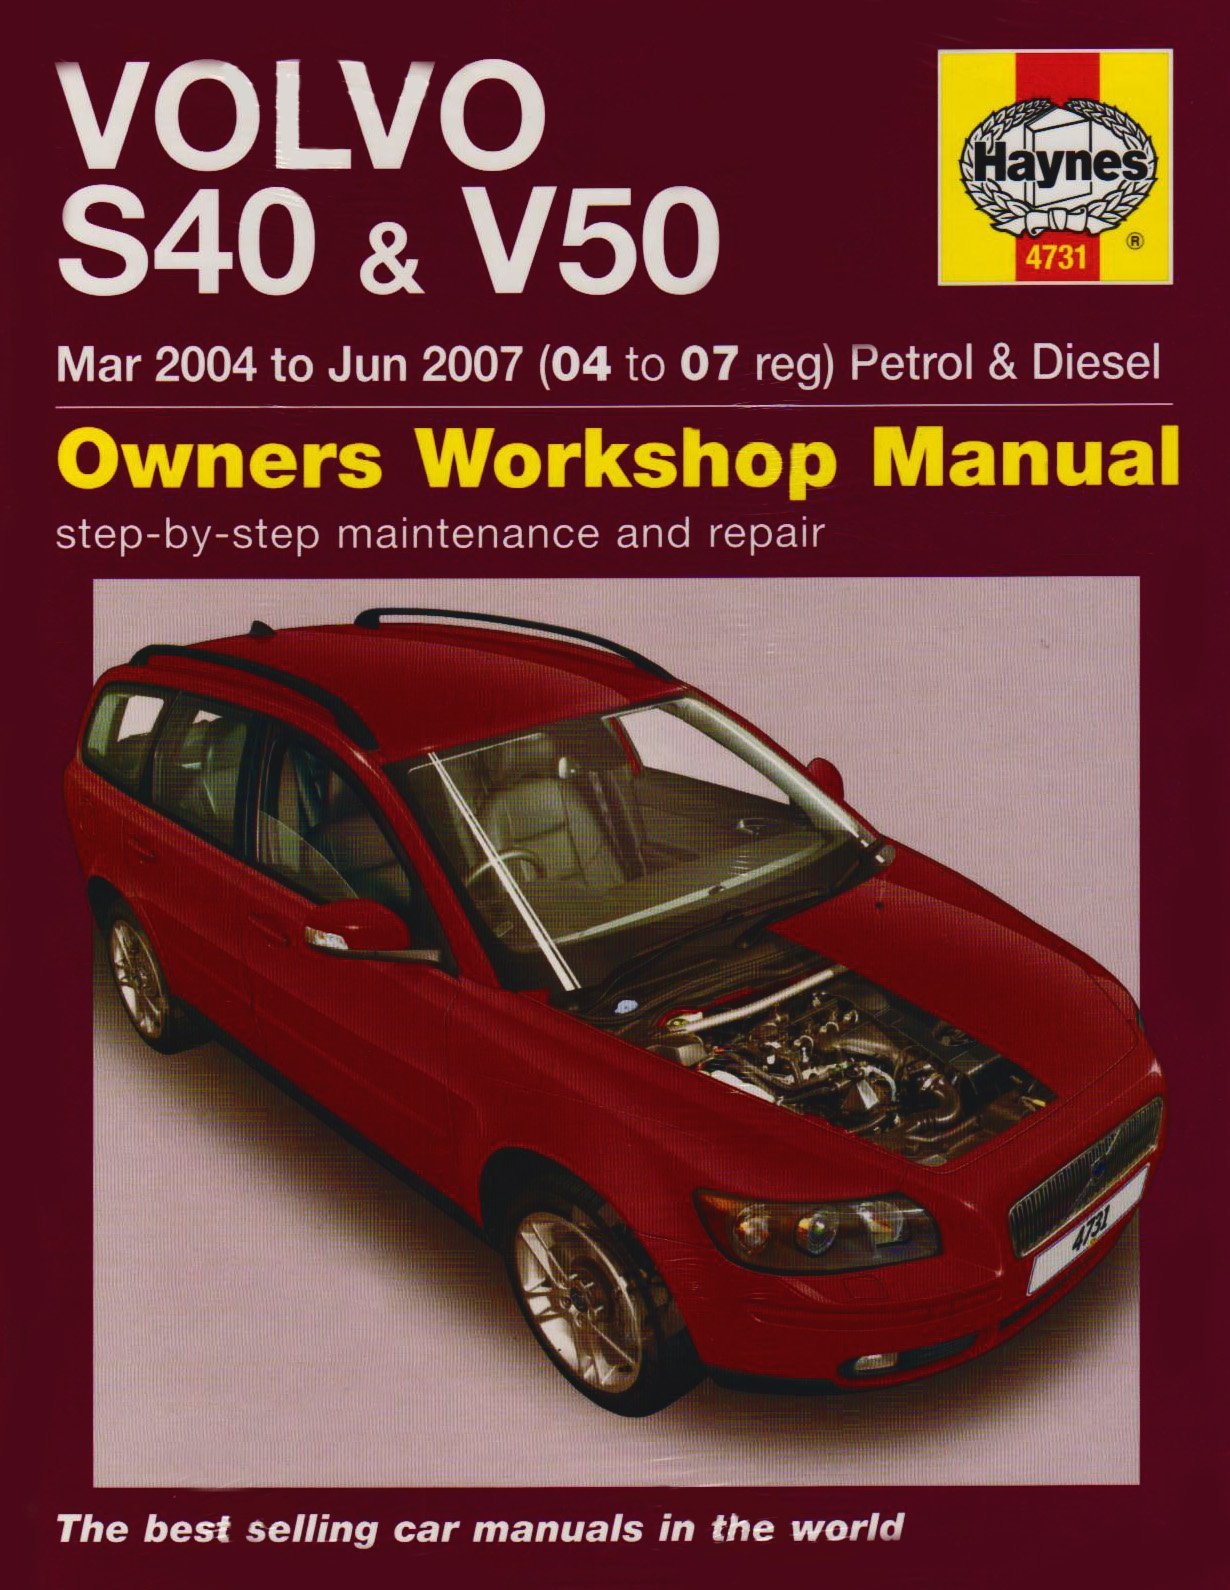 volvo s40 and v50 petrol and diesel service and repair manual 2004 rh amazon com 06 Volvo S40 Turbo 2004 Volvo S40 Turbo